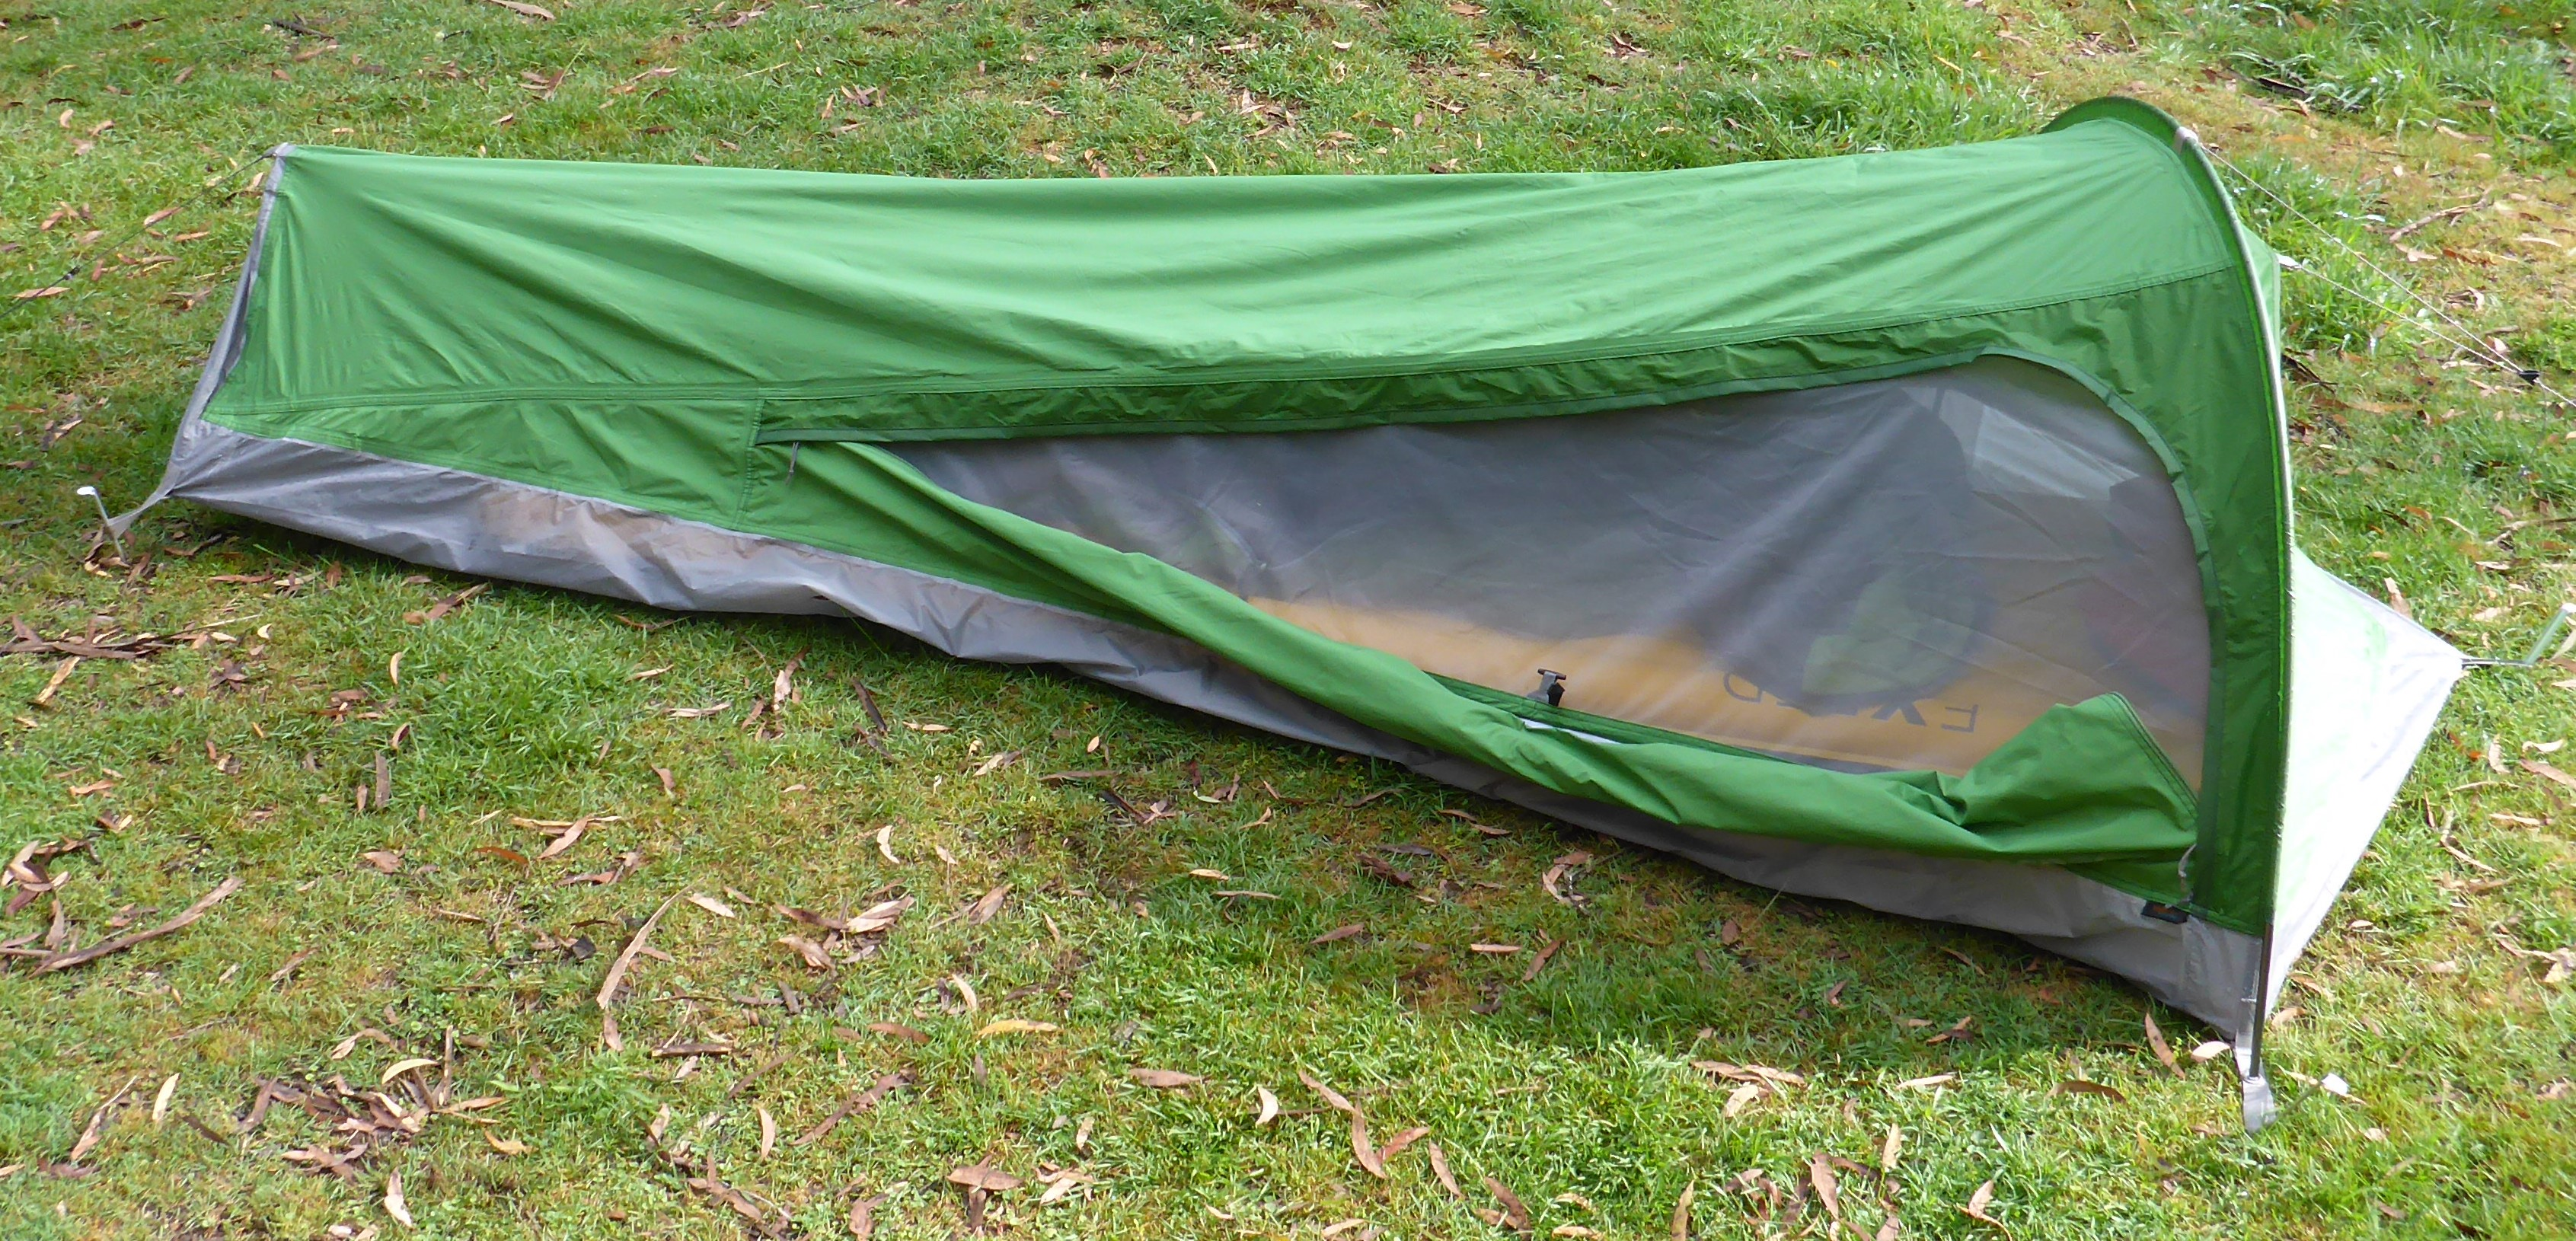 P1030820 & Gear Review: Macpac Bush Cocoon Bivy Bag | The World of Bretto